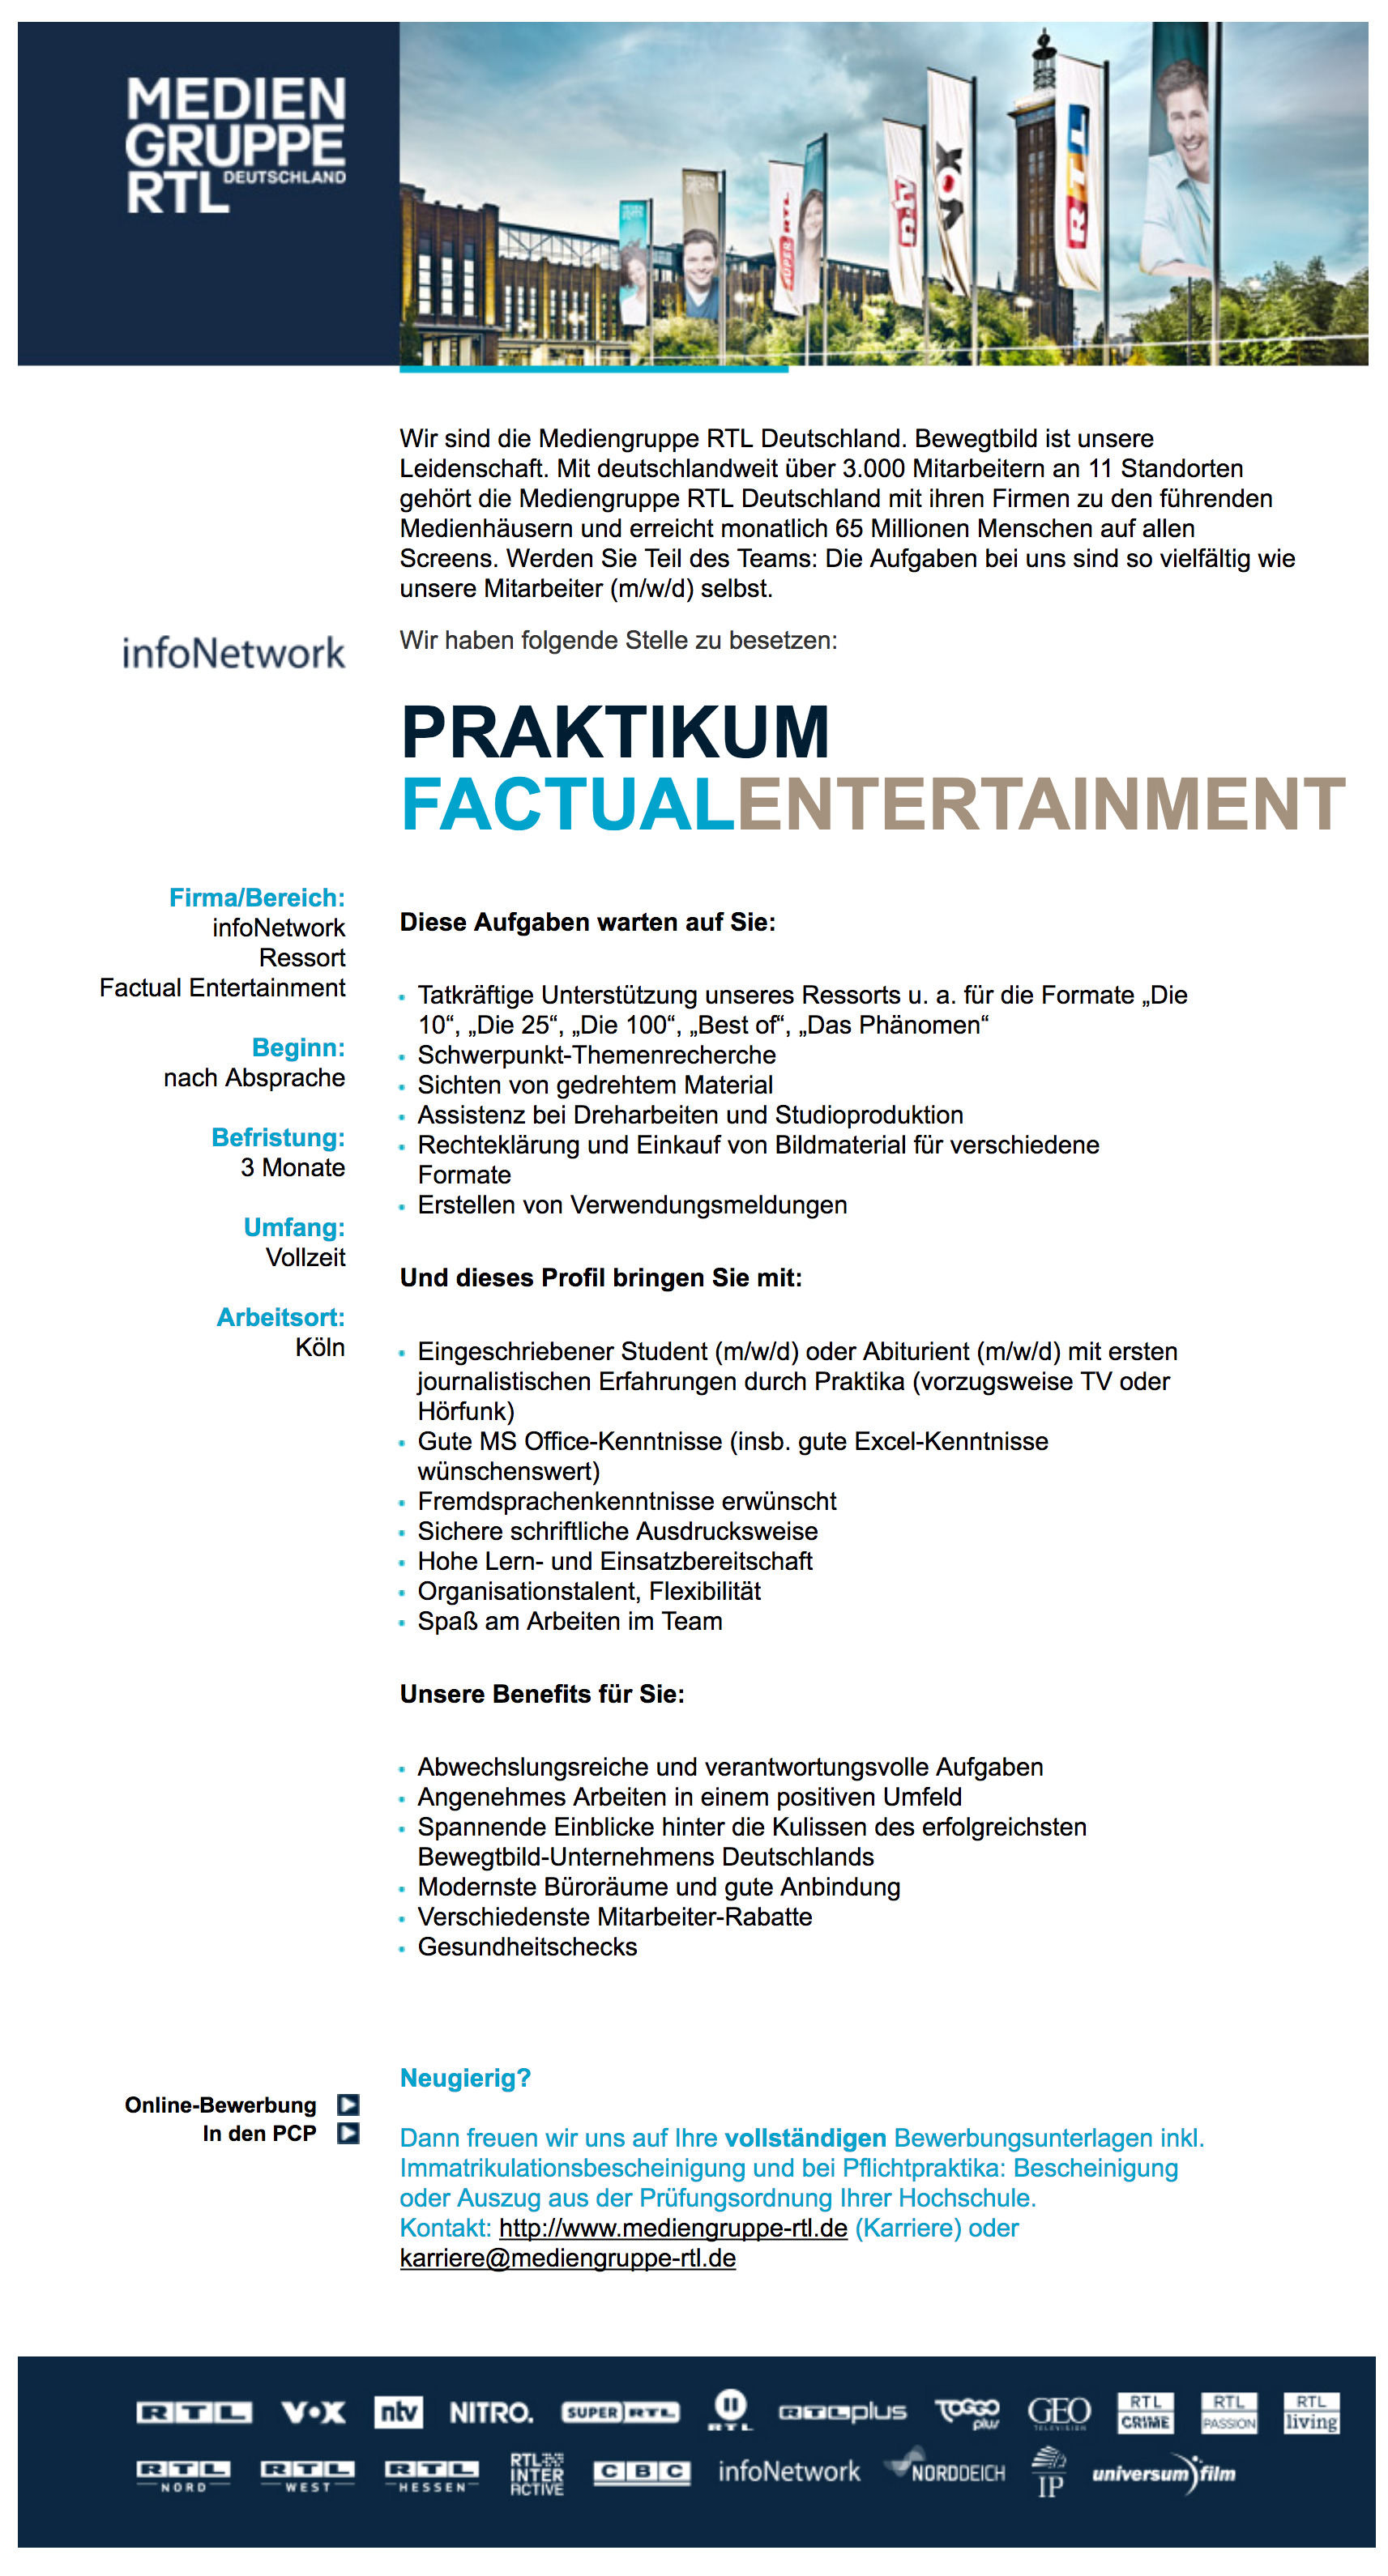 Praktikum Factual Entertainment (infoNetwork)